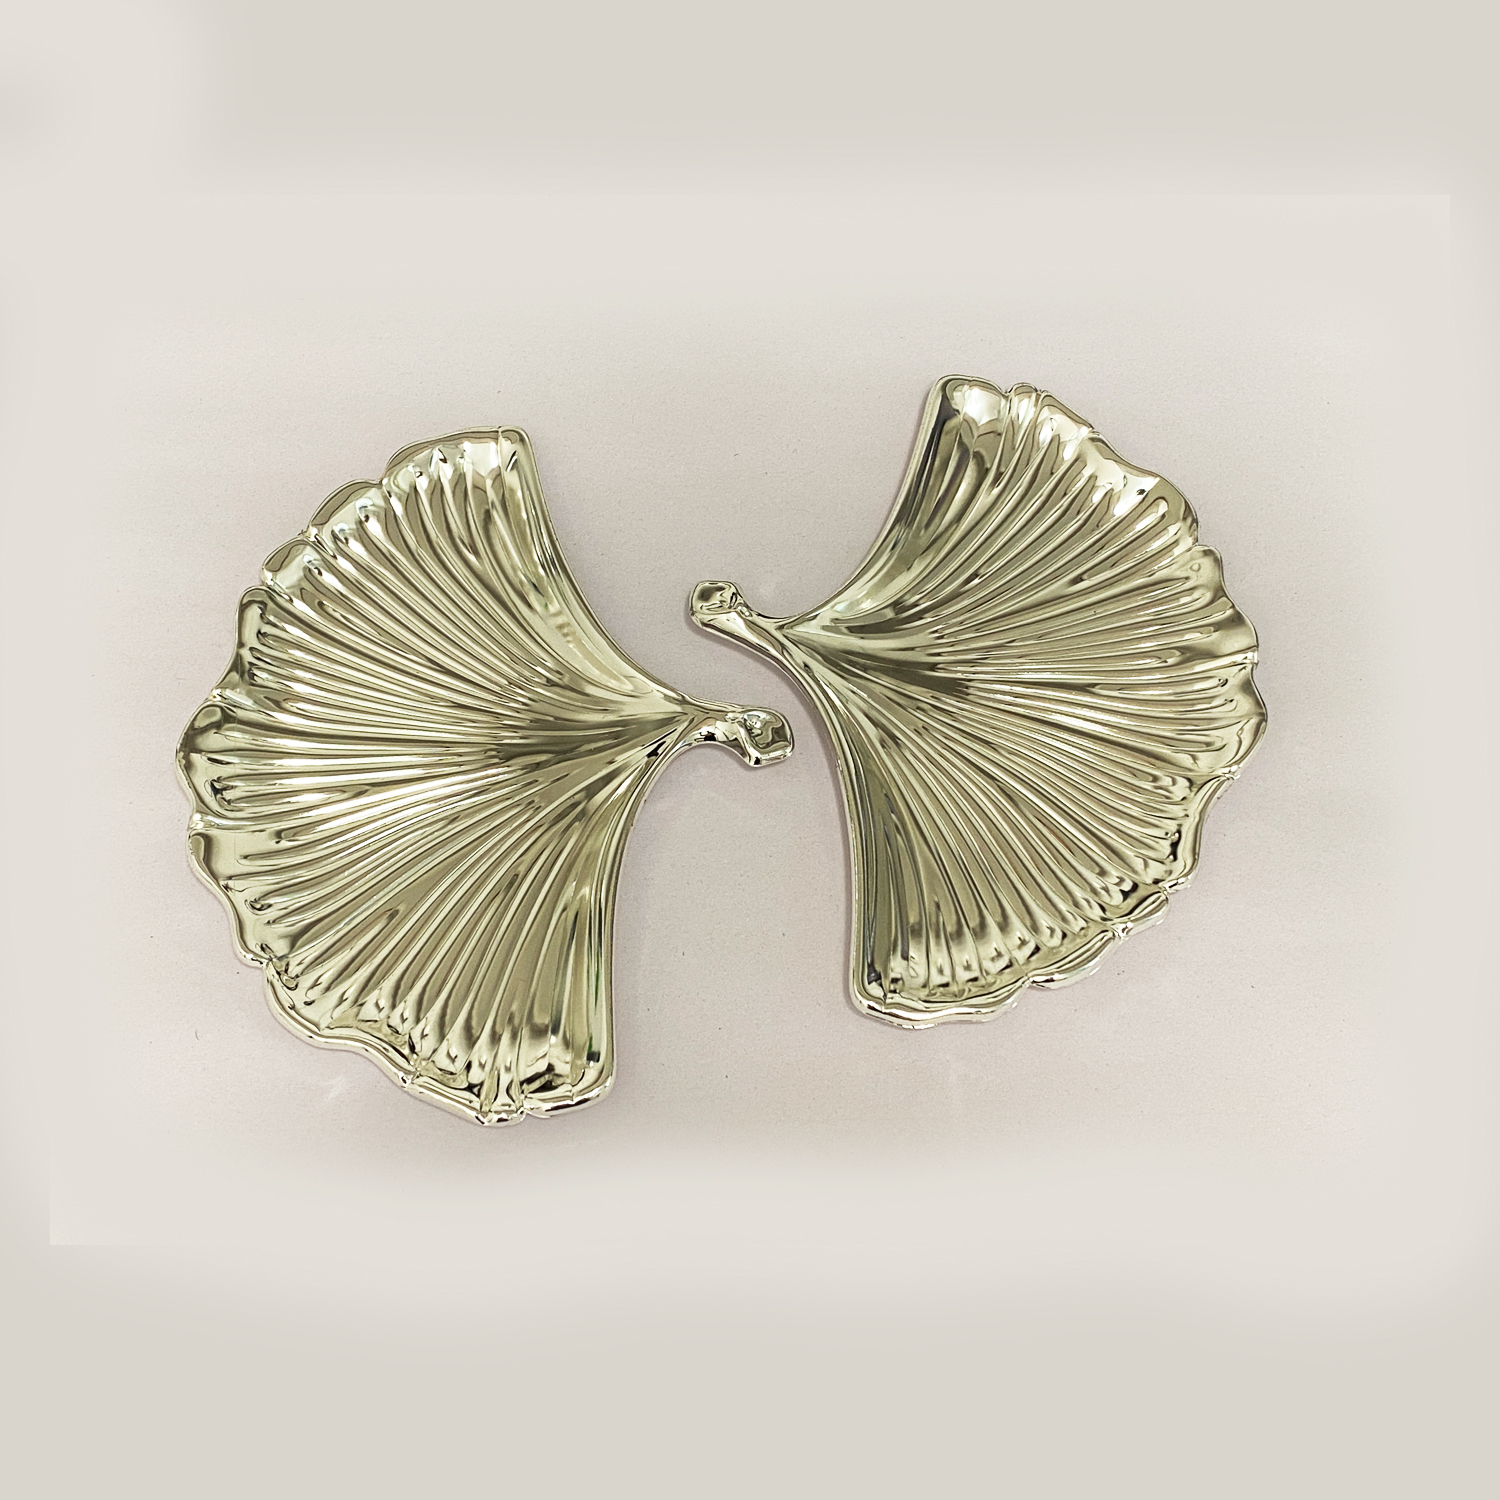 Fine Silver Plated Pair of Shell Dish   6..2×6.2″ each